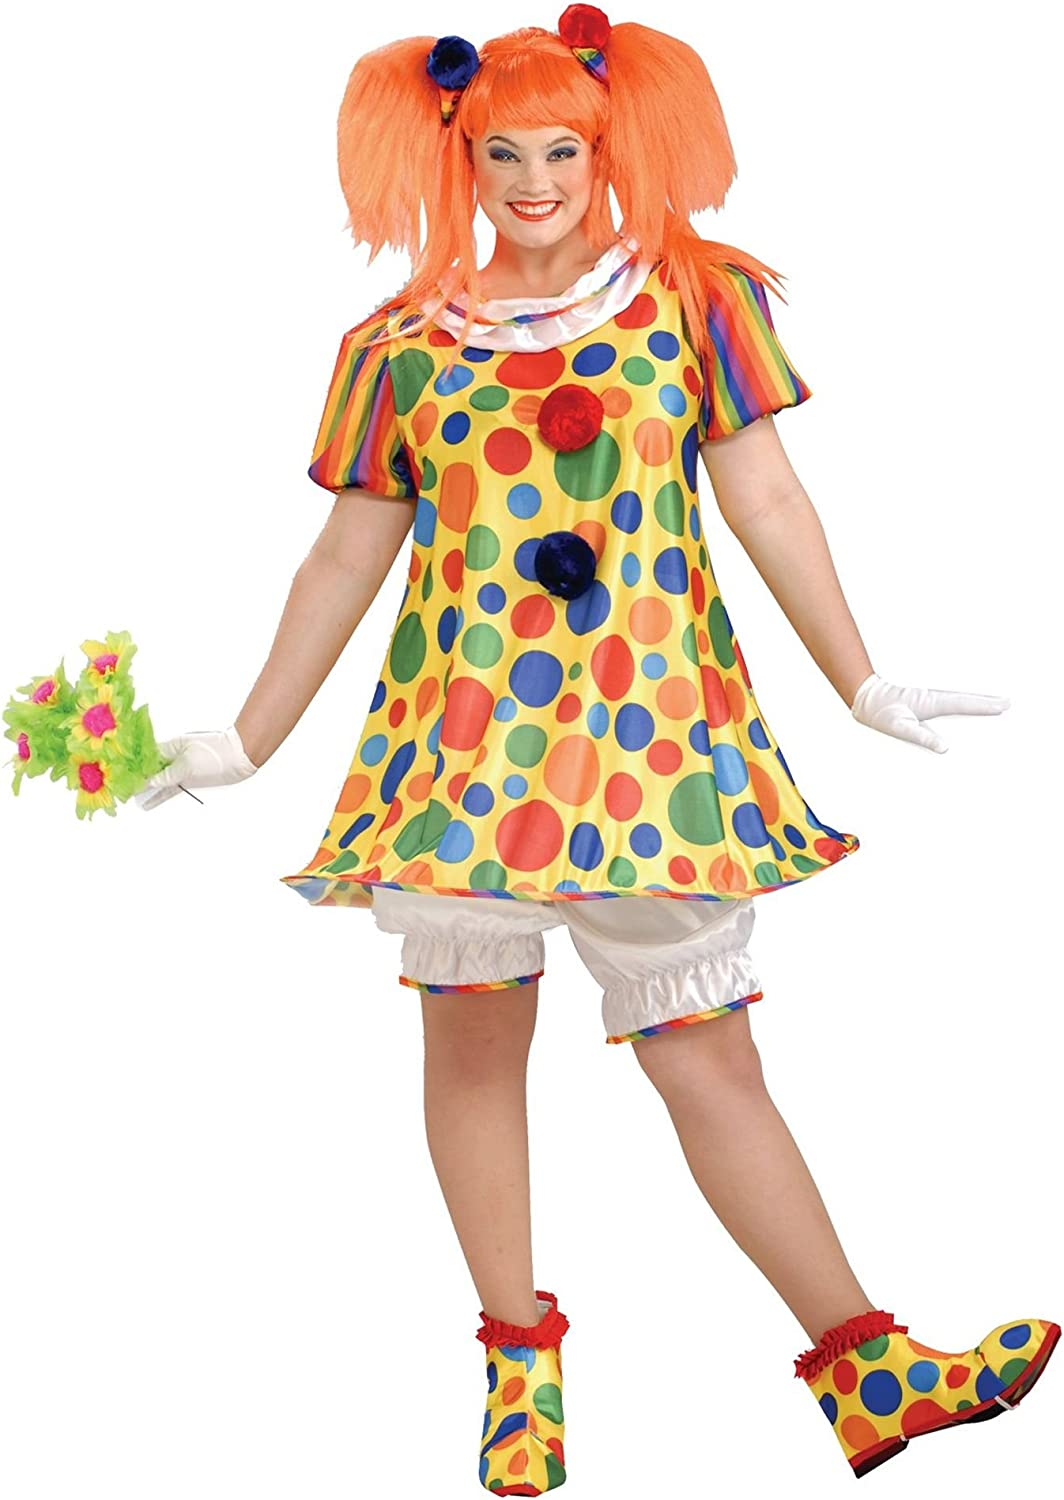 Giggles Clown Circus Carnival Girl Fancy Dress Up Halloween Deluxe Adult Costume